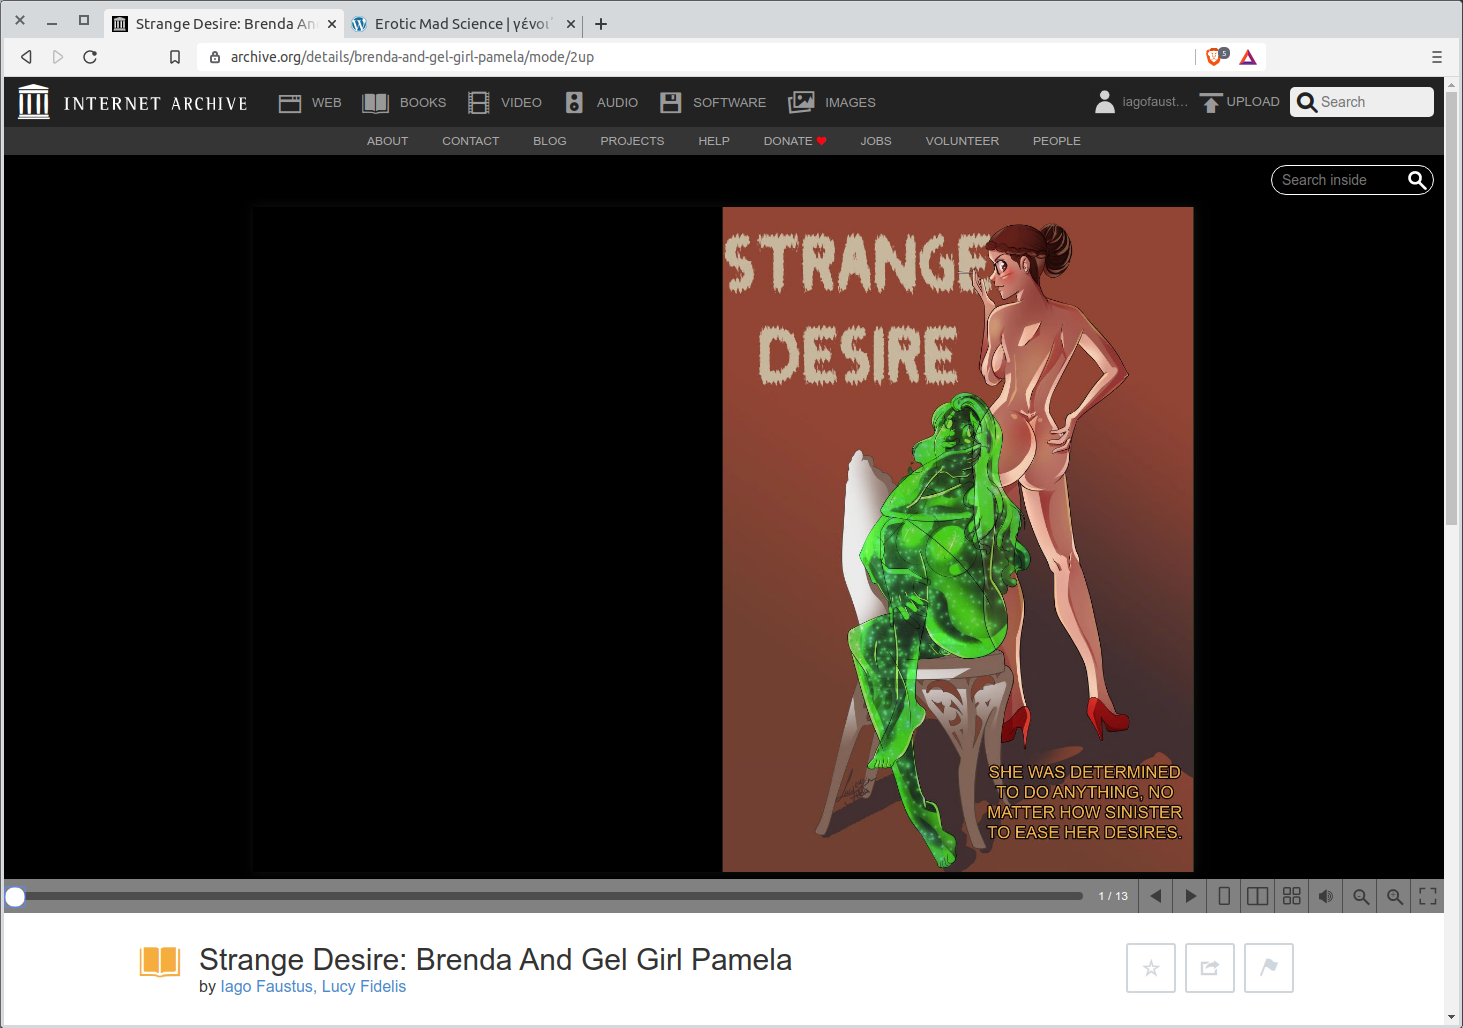 Screenshot of the Internet Archive page for Brenda and Gel Girl Pmela